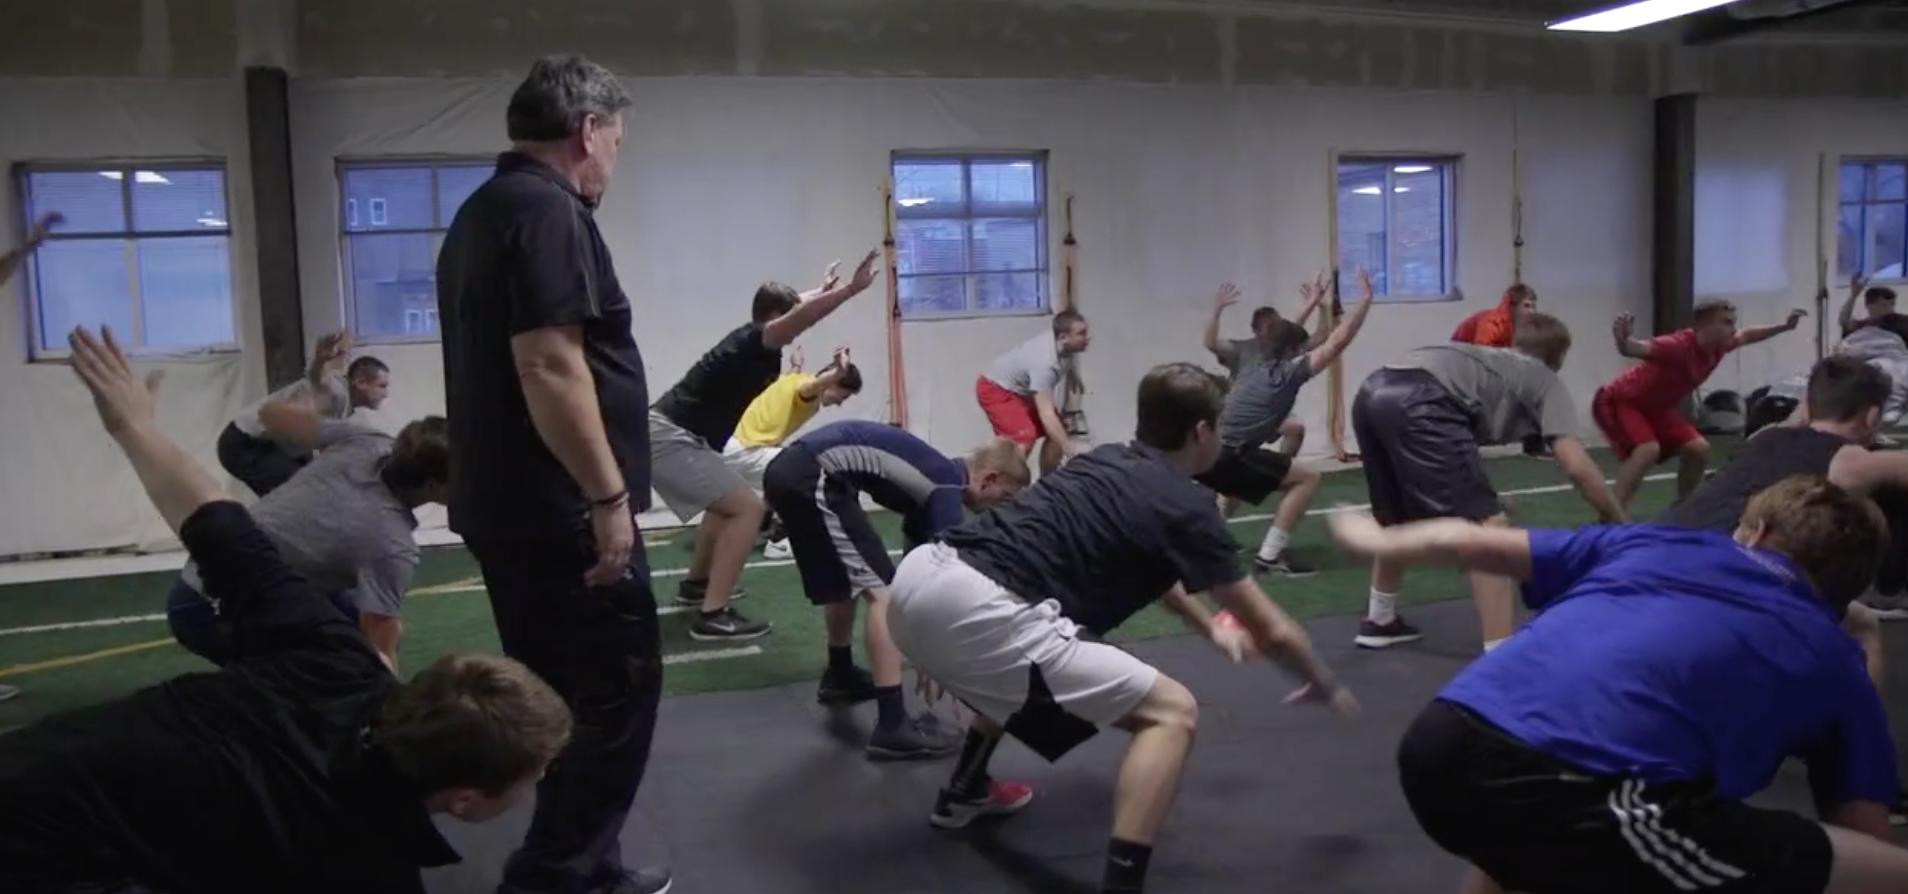 Athletes working out at the Performance Training Academy